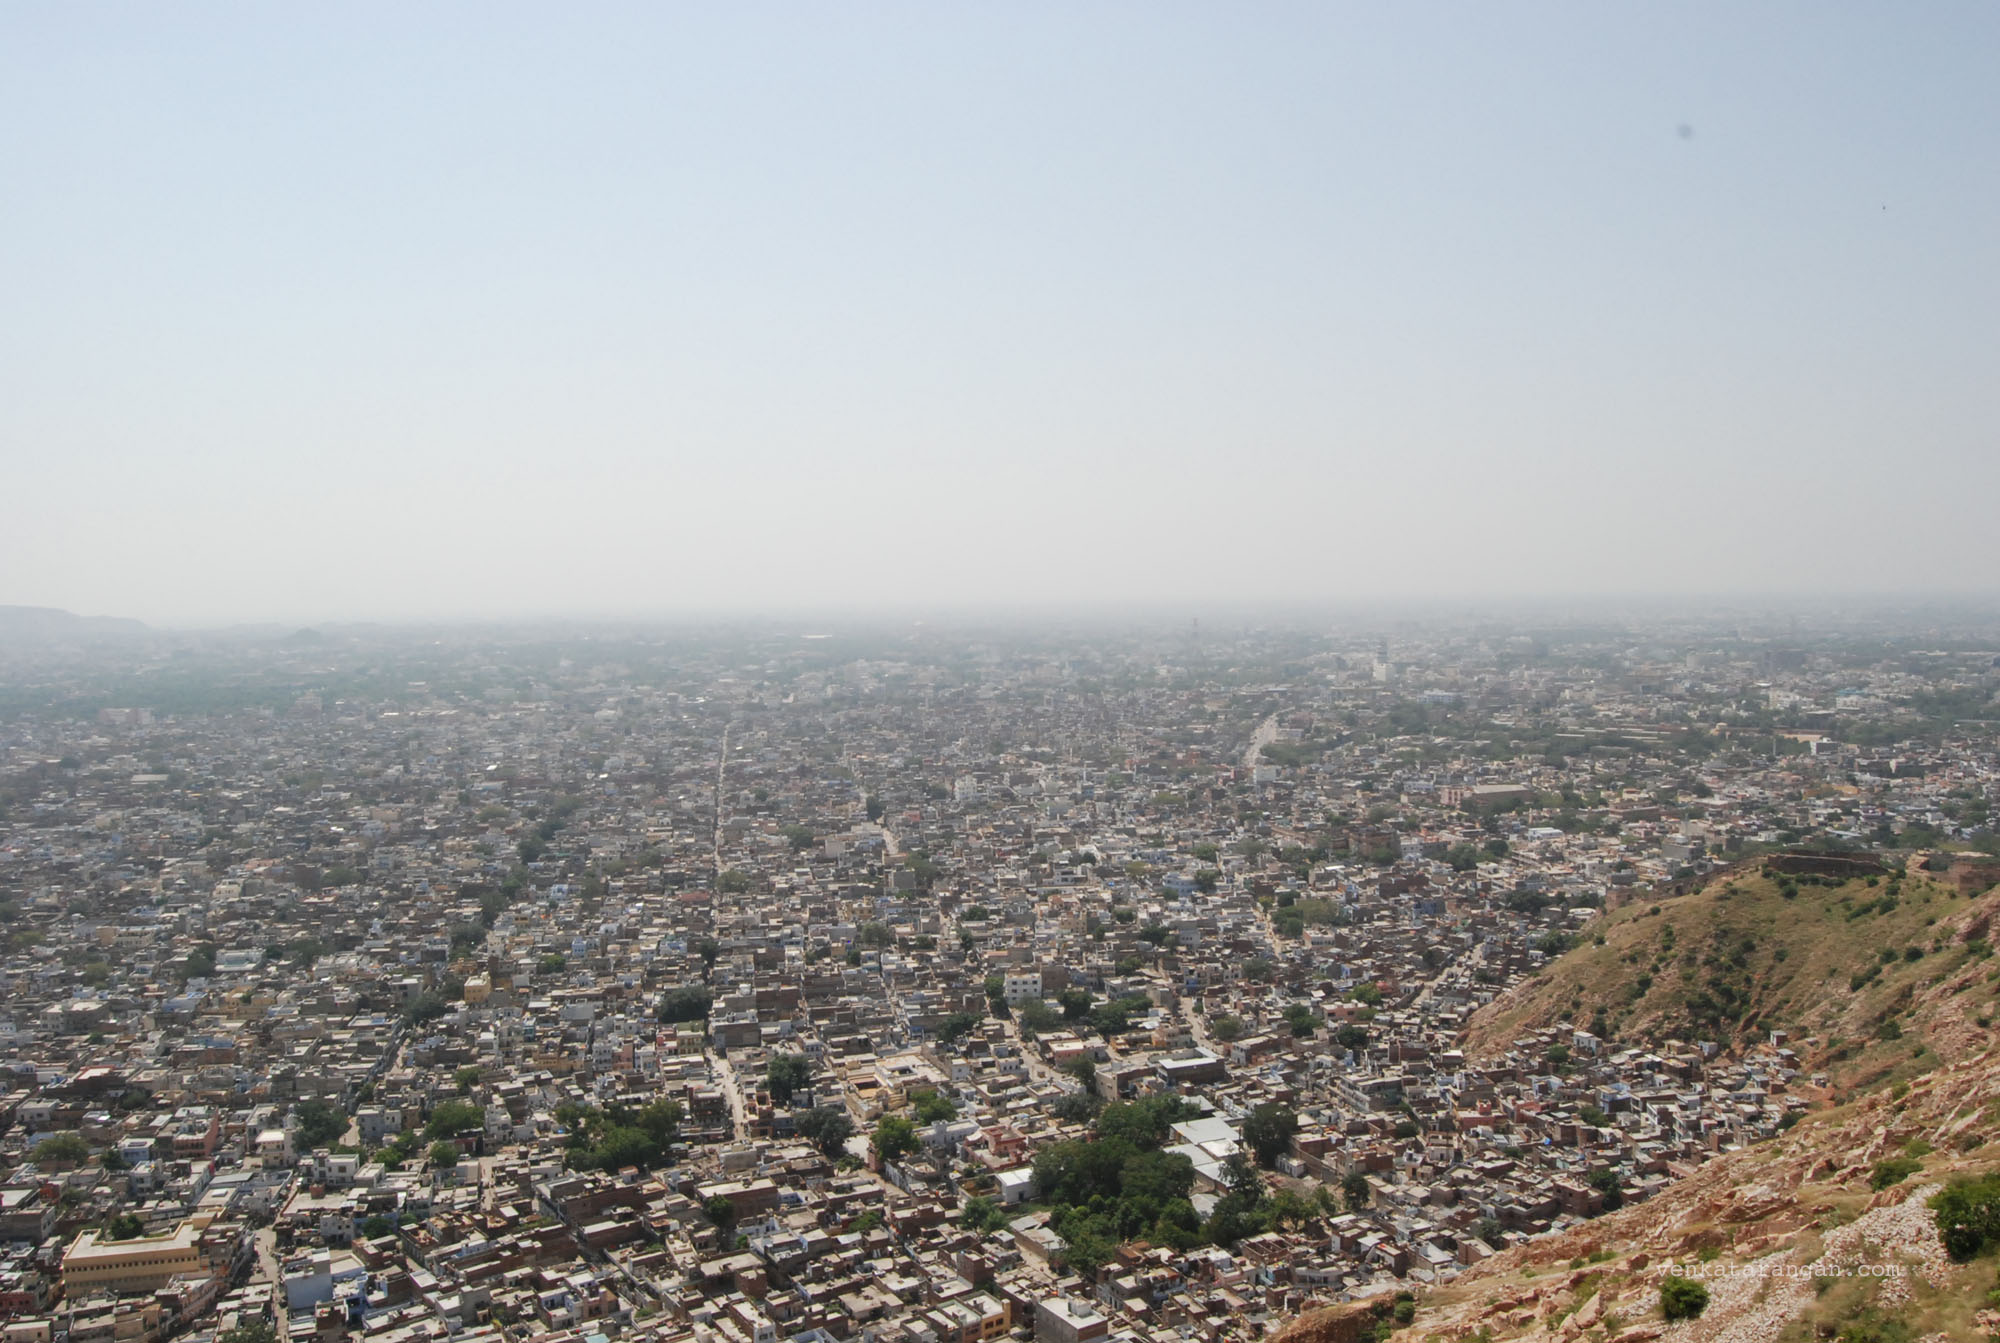 View of the city seen from Nahargarh Fort